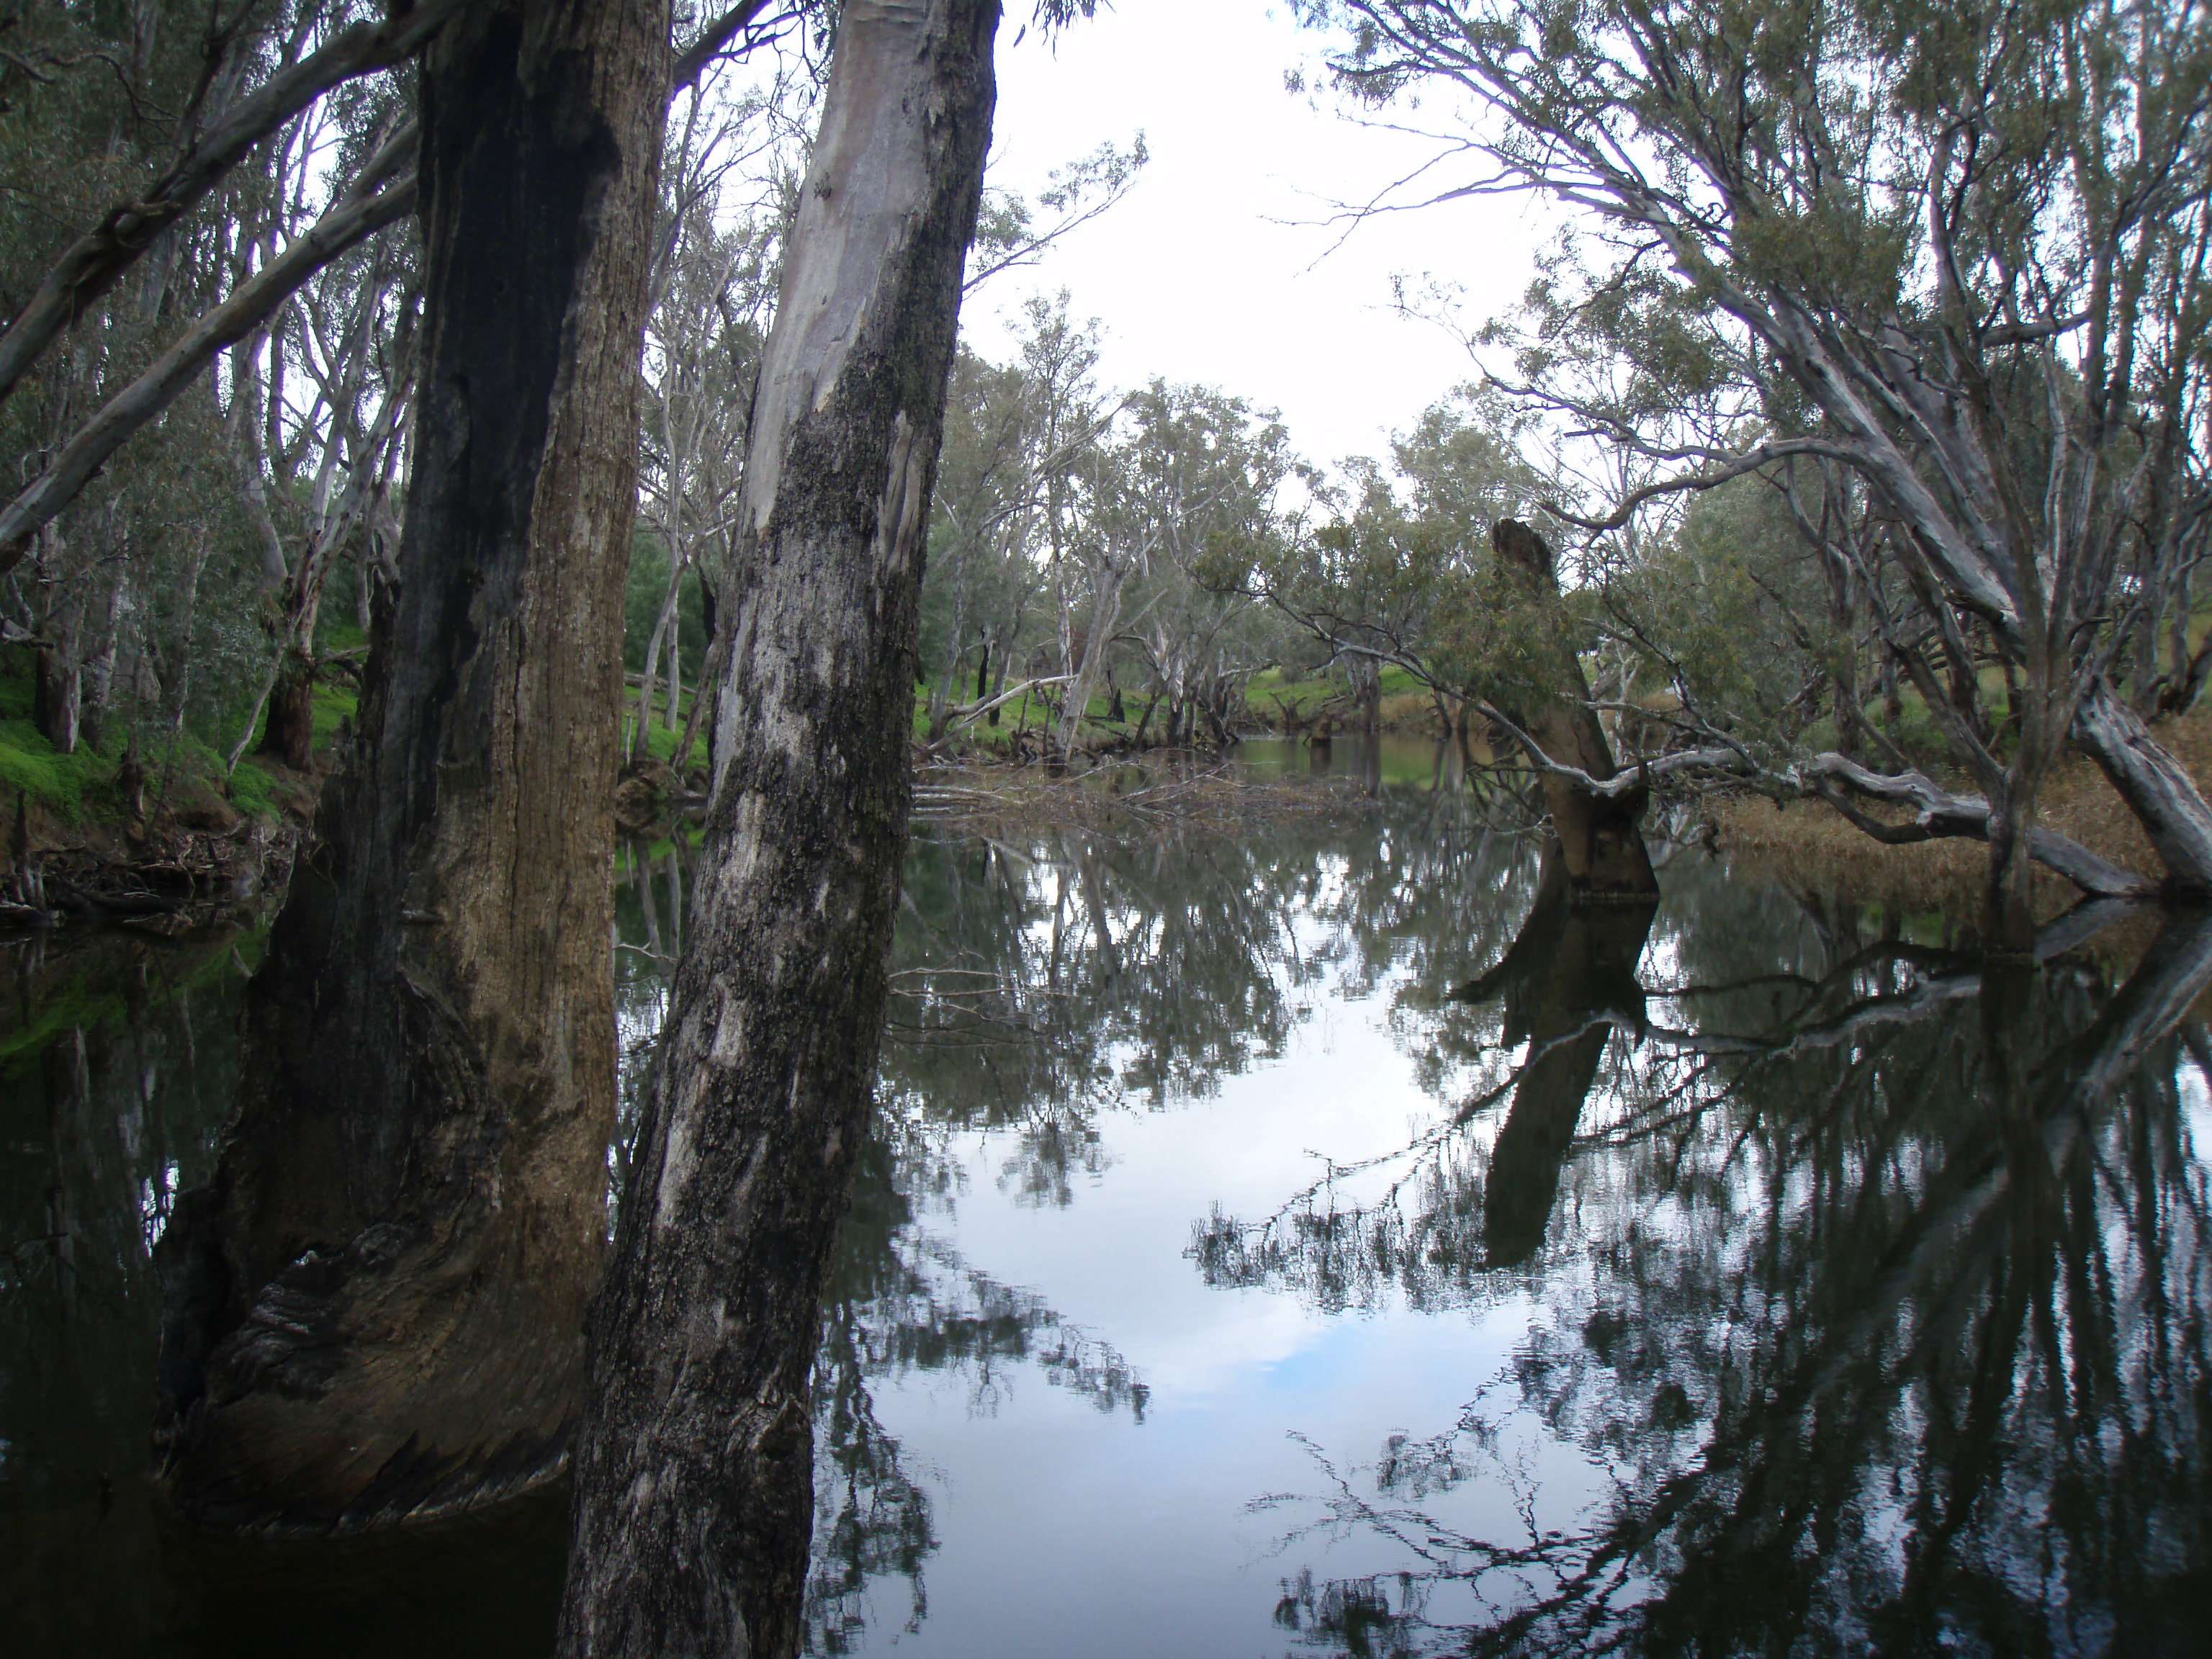 Loddon River at Bridgewater near Bedrock Outcrop